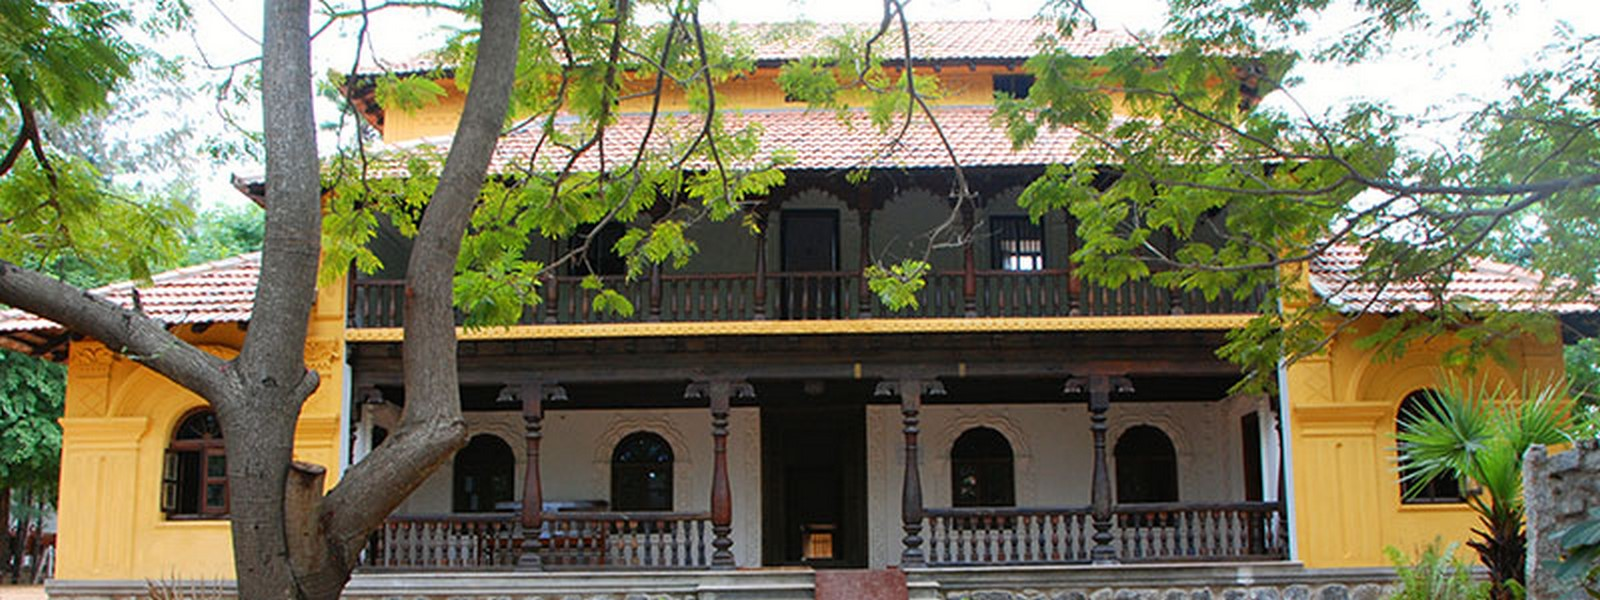 10 Examples of Vernacular architecture in South India - Sheet7